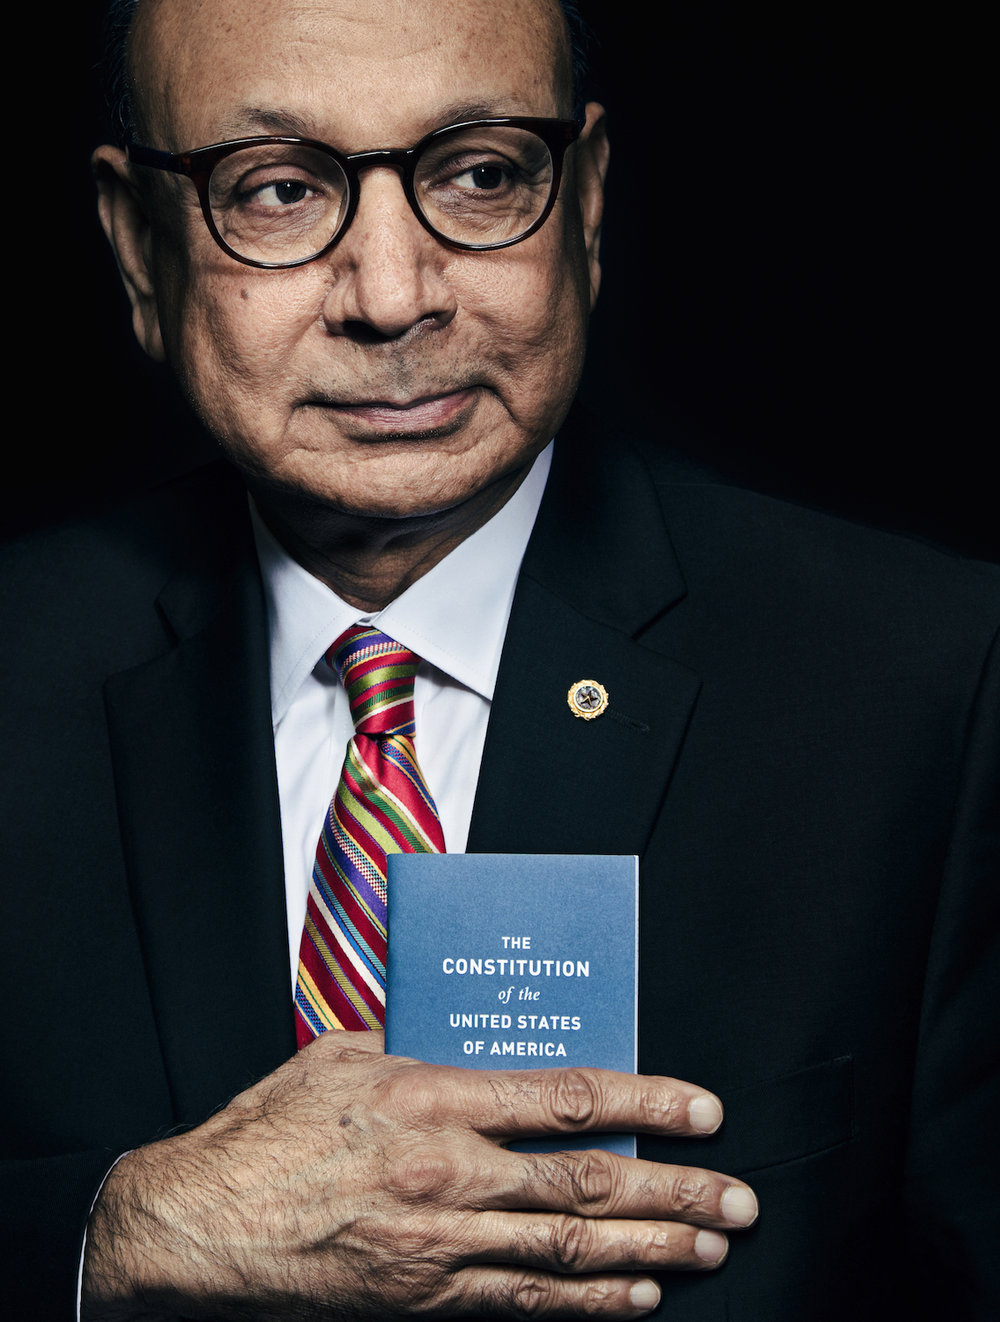 quinn russell brown, quinn brown seattle, quinn russell brown seattle, quinn russell brown seattle photography, seattle editorial portrait, seattle studio portrait photography, khizr khan, gold star father khizr khan, khizr khan constitution, khizr khan photo, khizr khan portrait